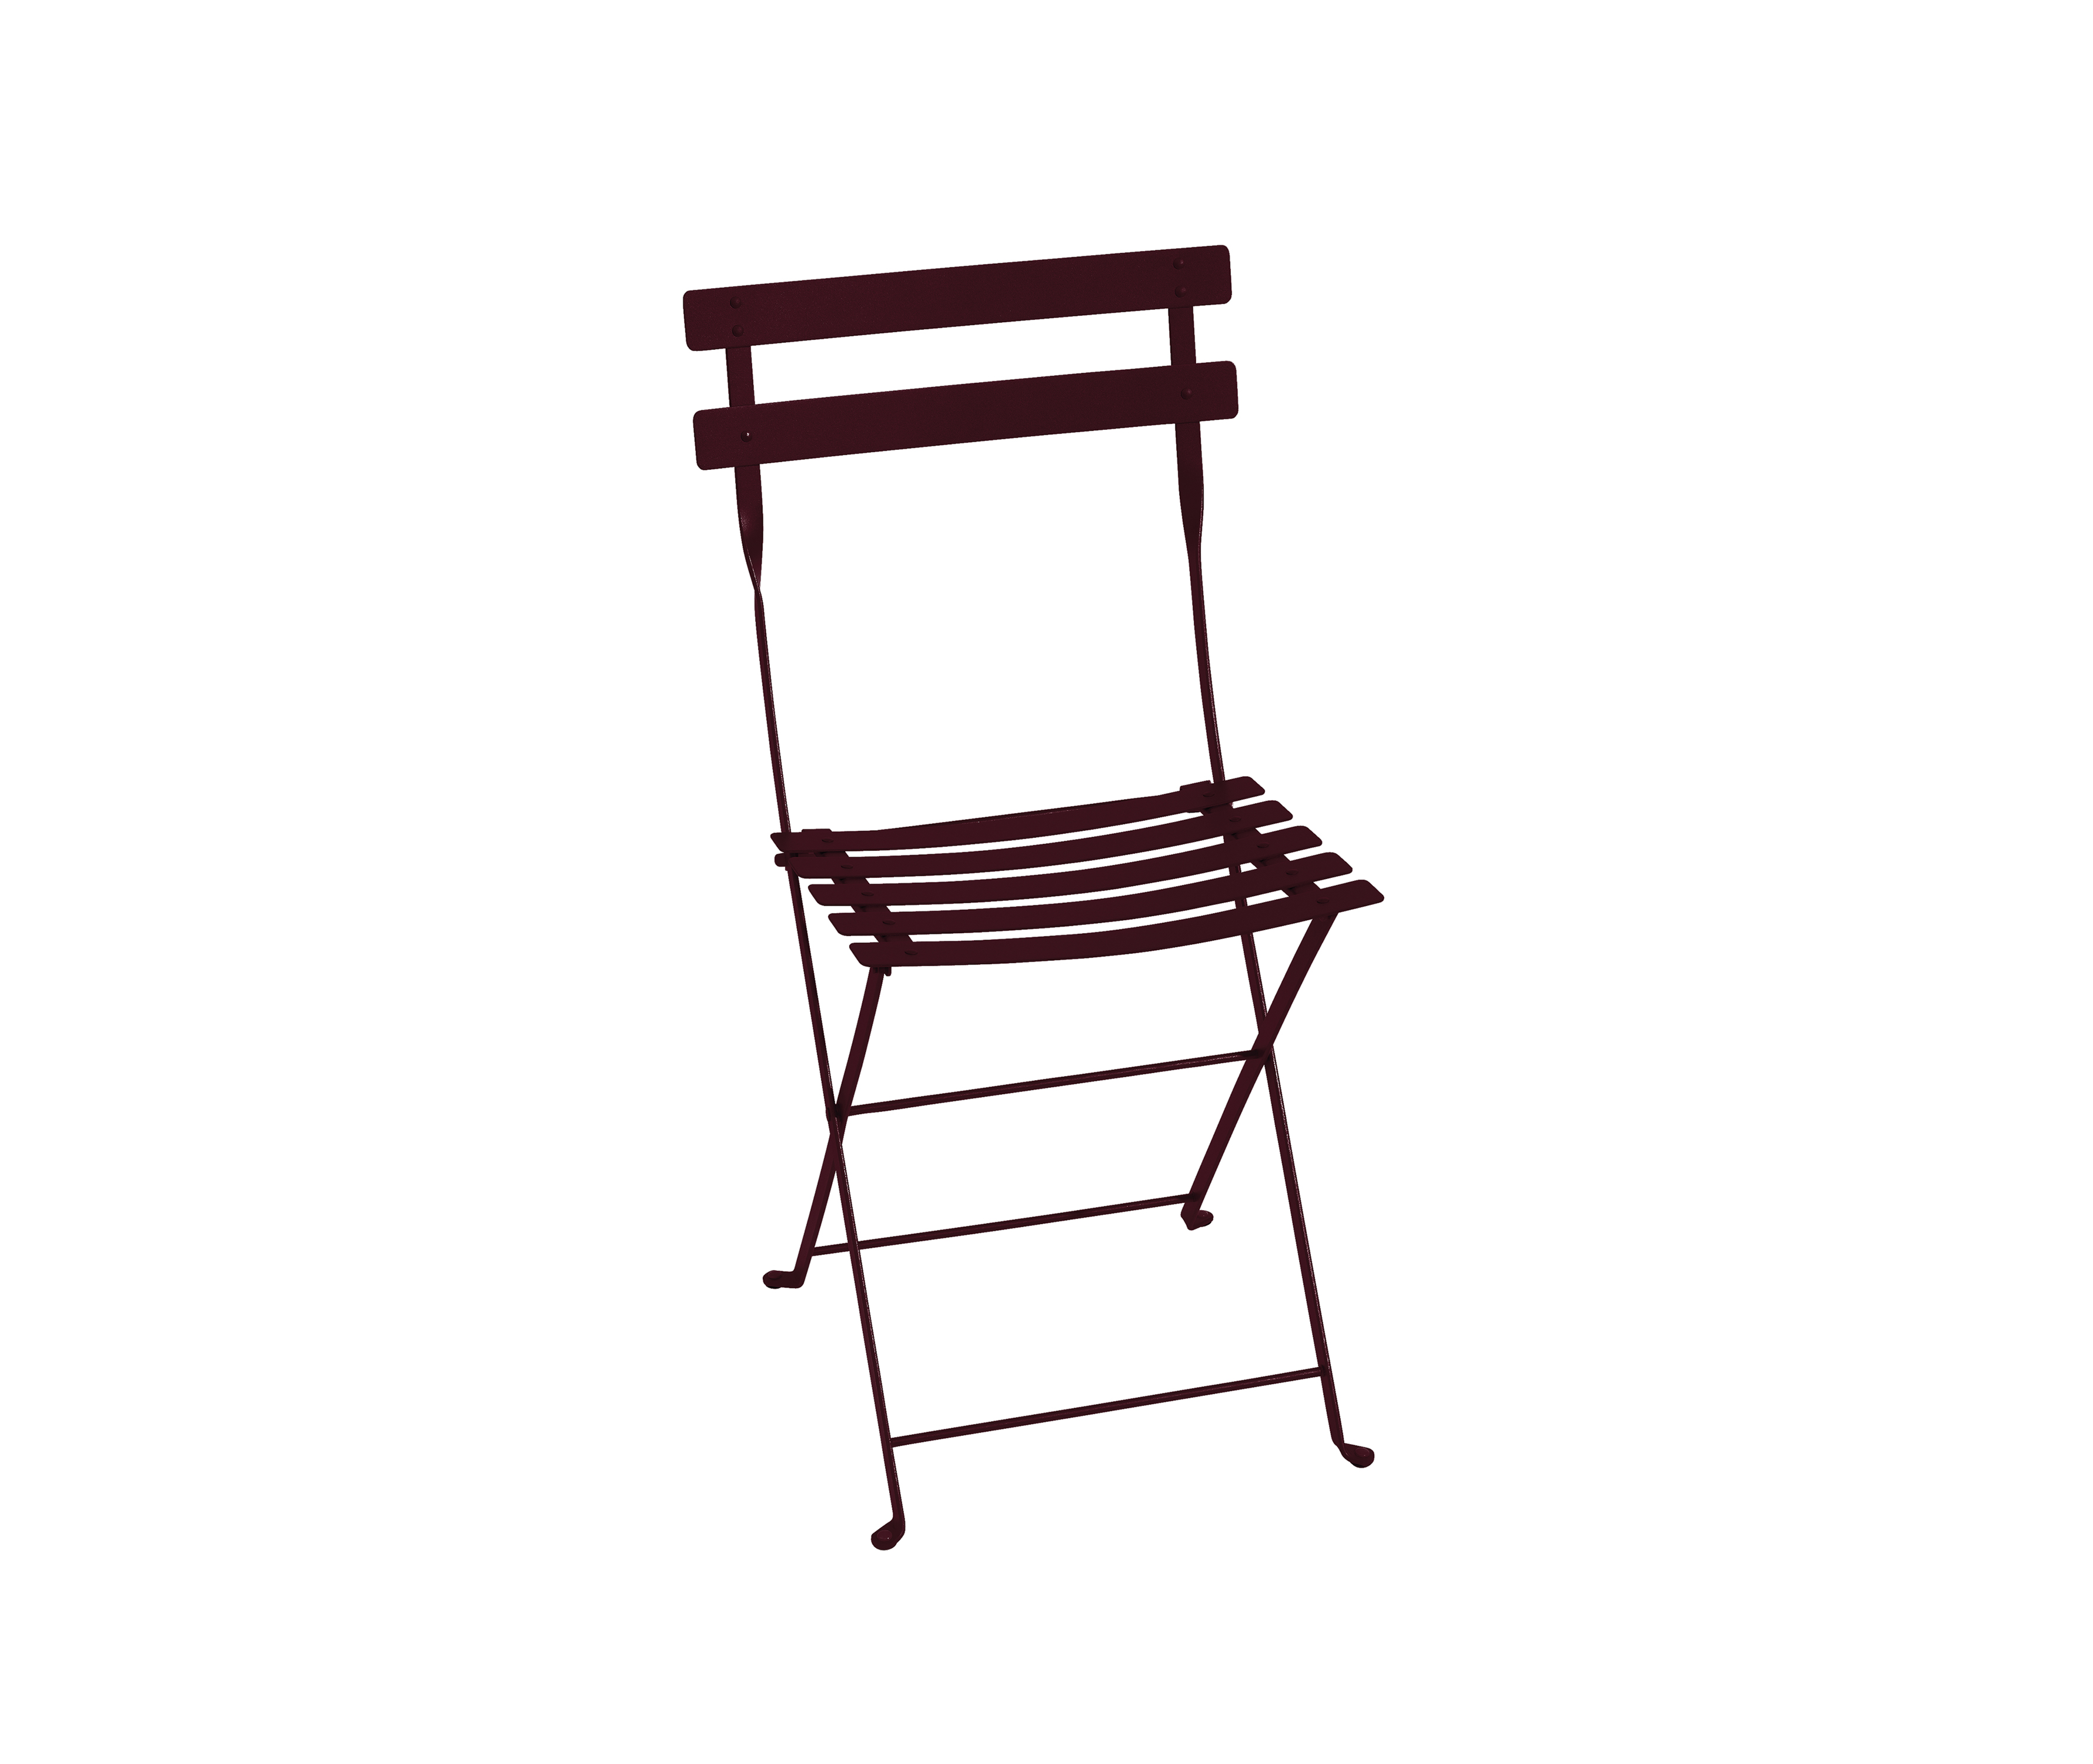 Fermob_Bistro Chair_Black Cherry_int_product